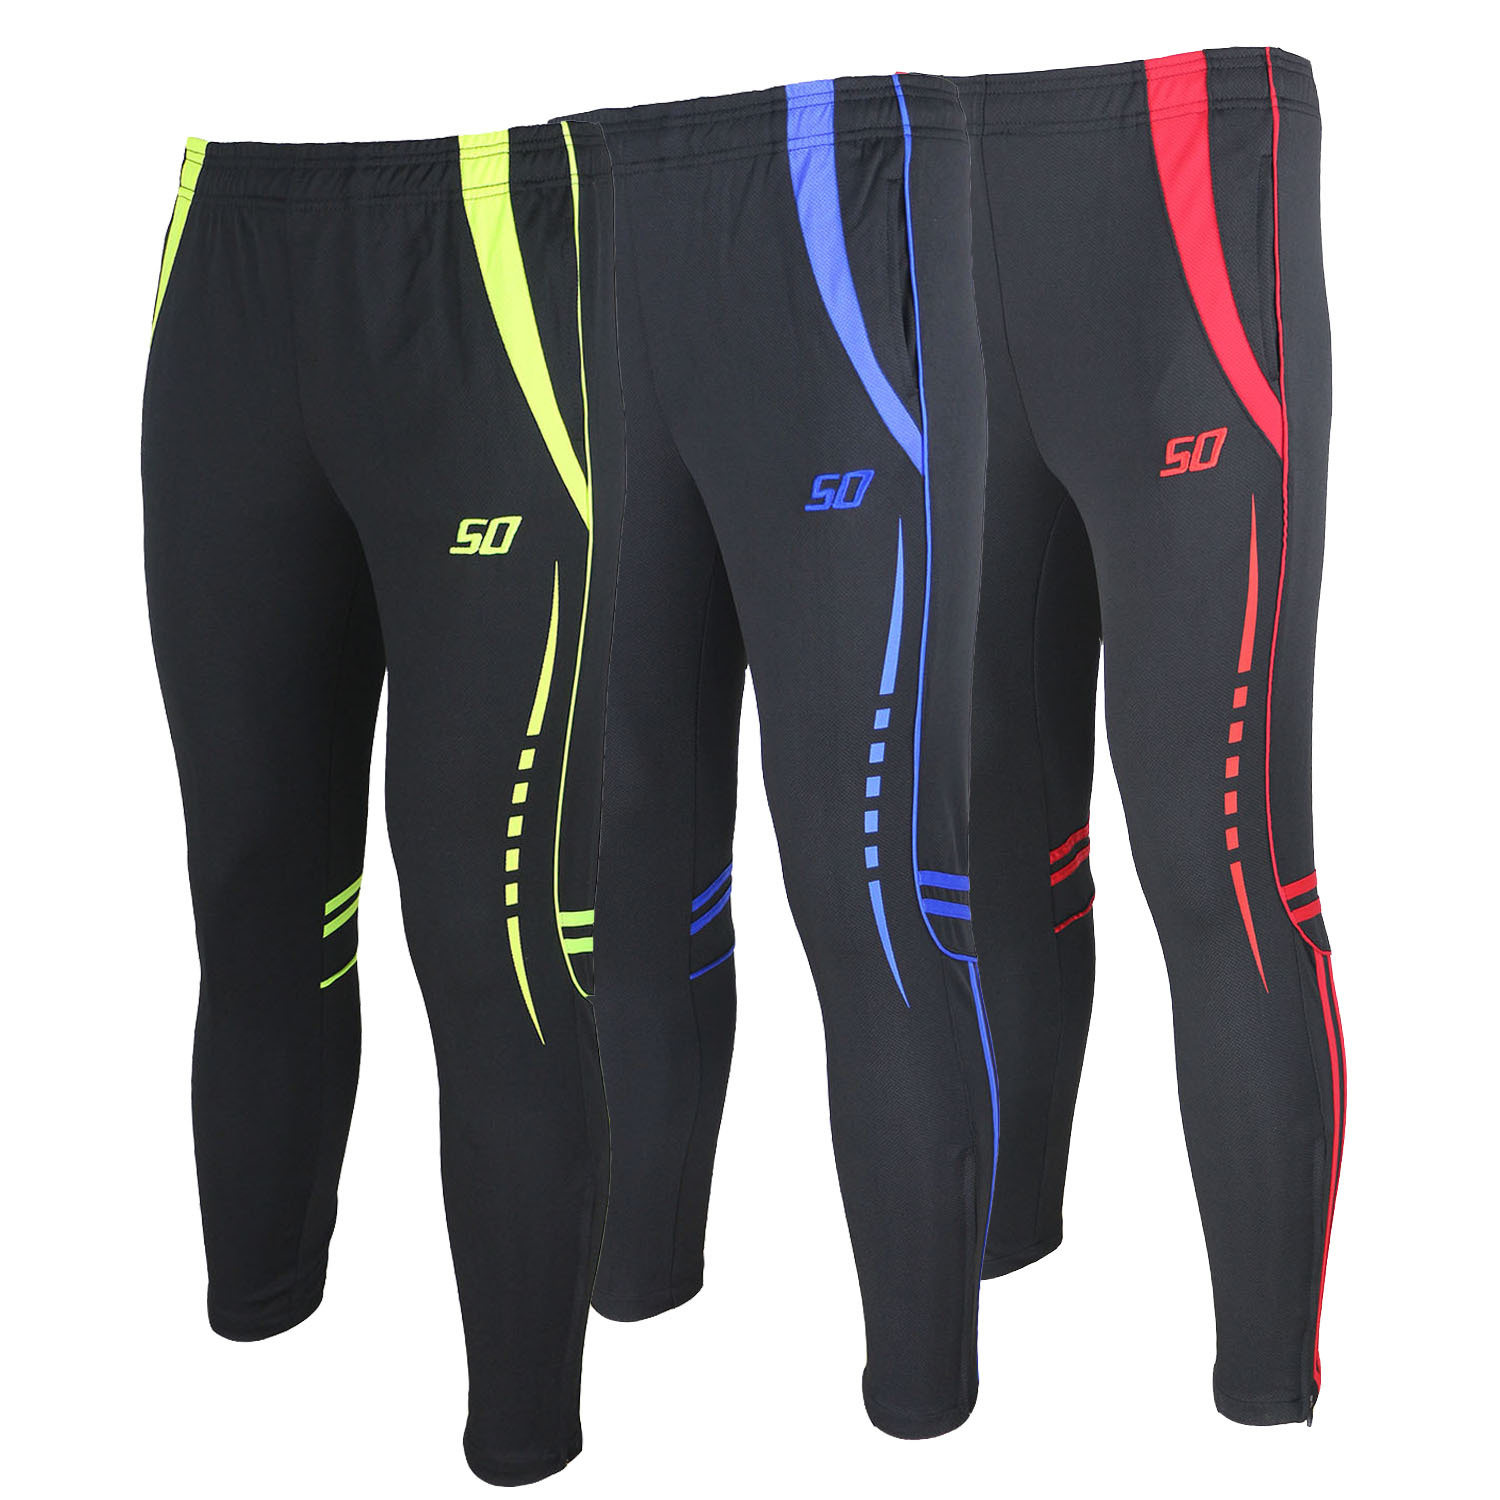 Men's compression running tights Soccer Pants Gym Fitness Training Pants Jogging Soccer ...